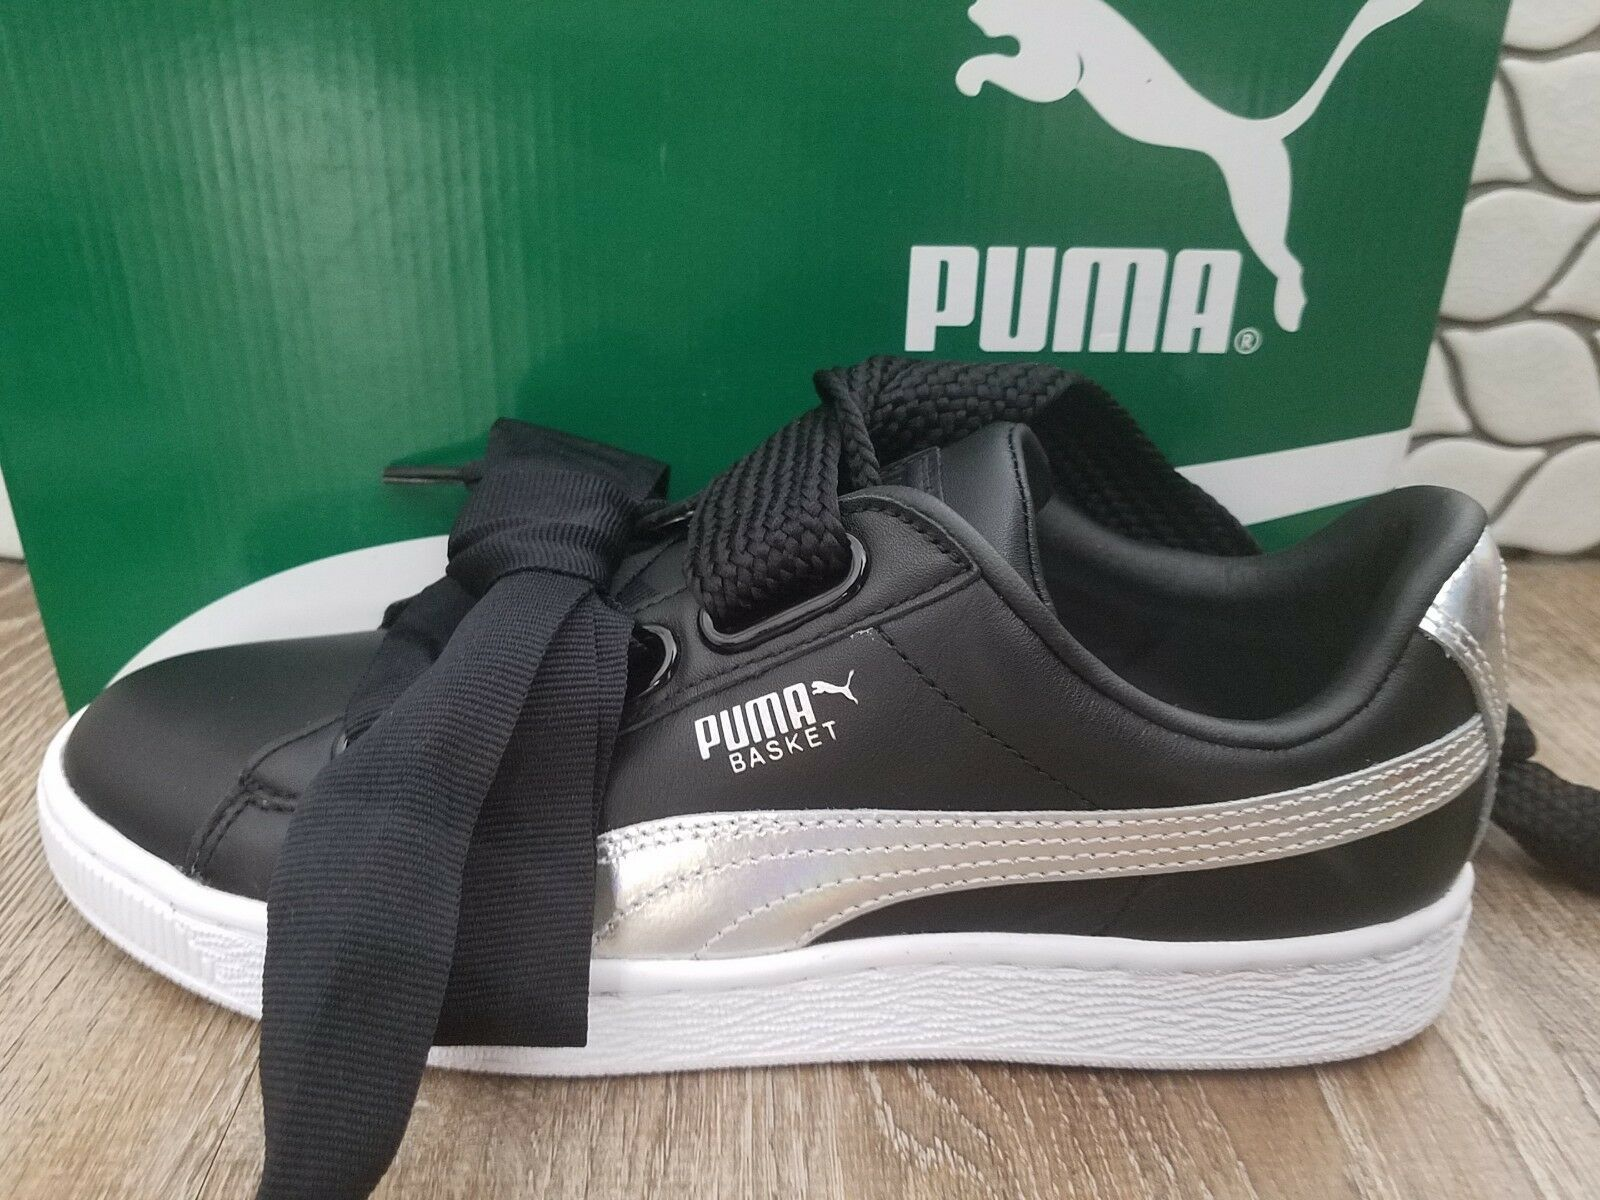 PUMA Womens Basket Heart Explosive Leather 7.5 Black   Silver Sneakers shoes